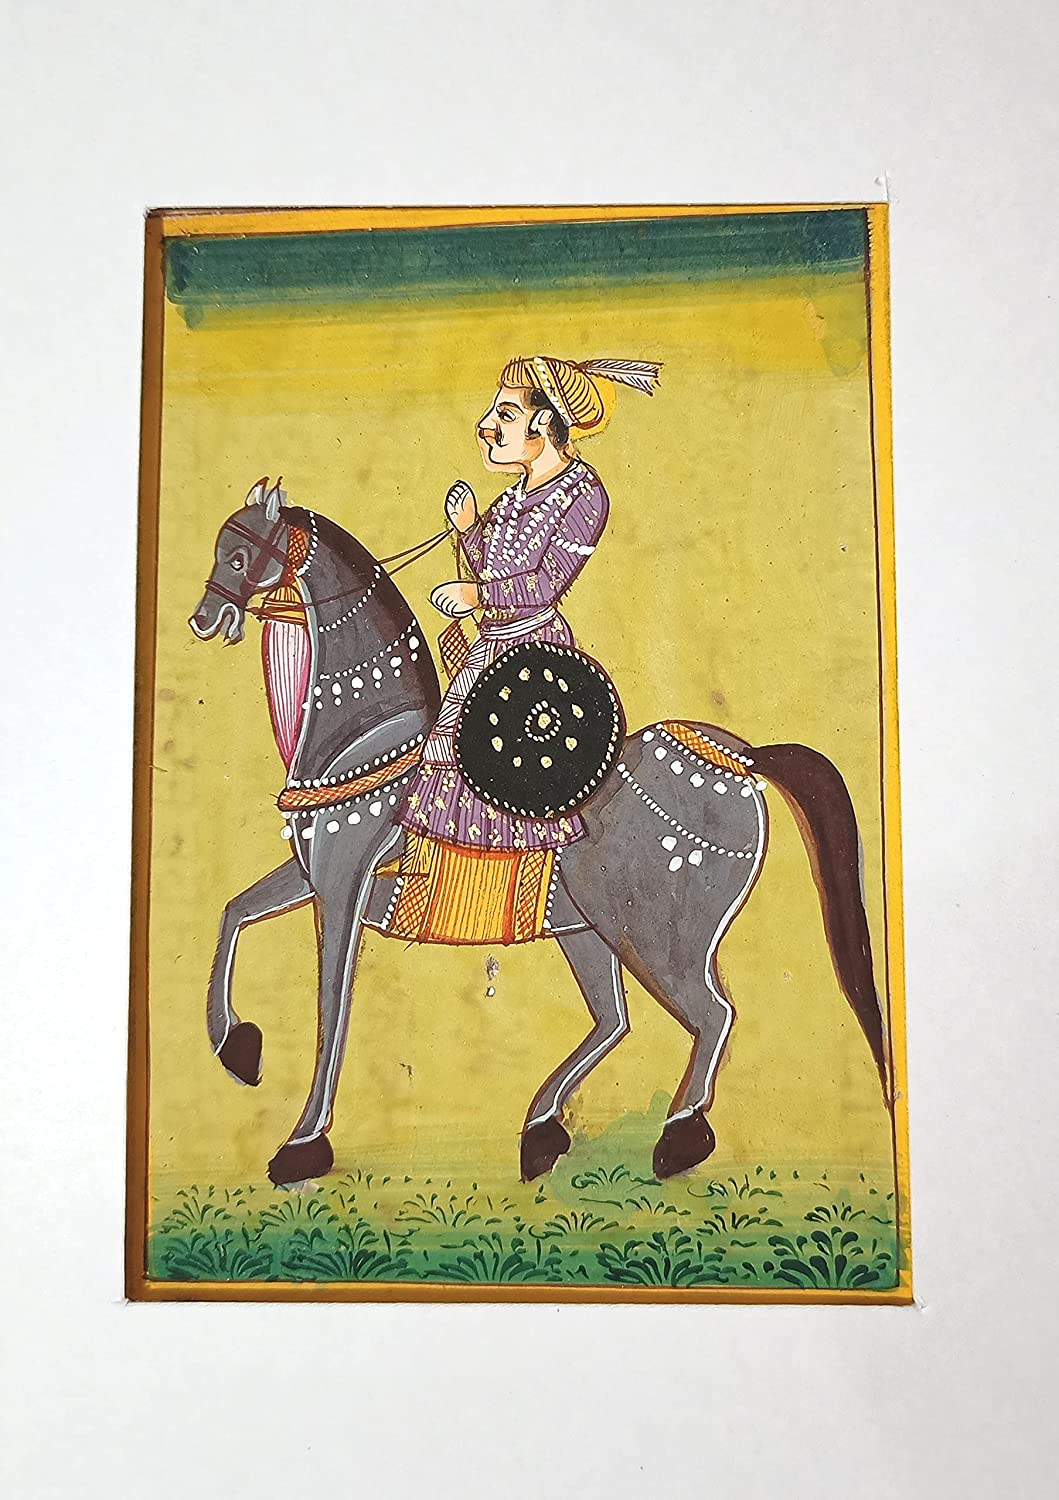 Indian Prince Riding Limited time Manufacturer regenerated product cheap sale Of His #82 Handmade Horse Favorite Painting